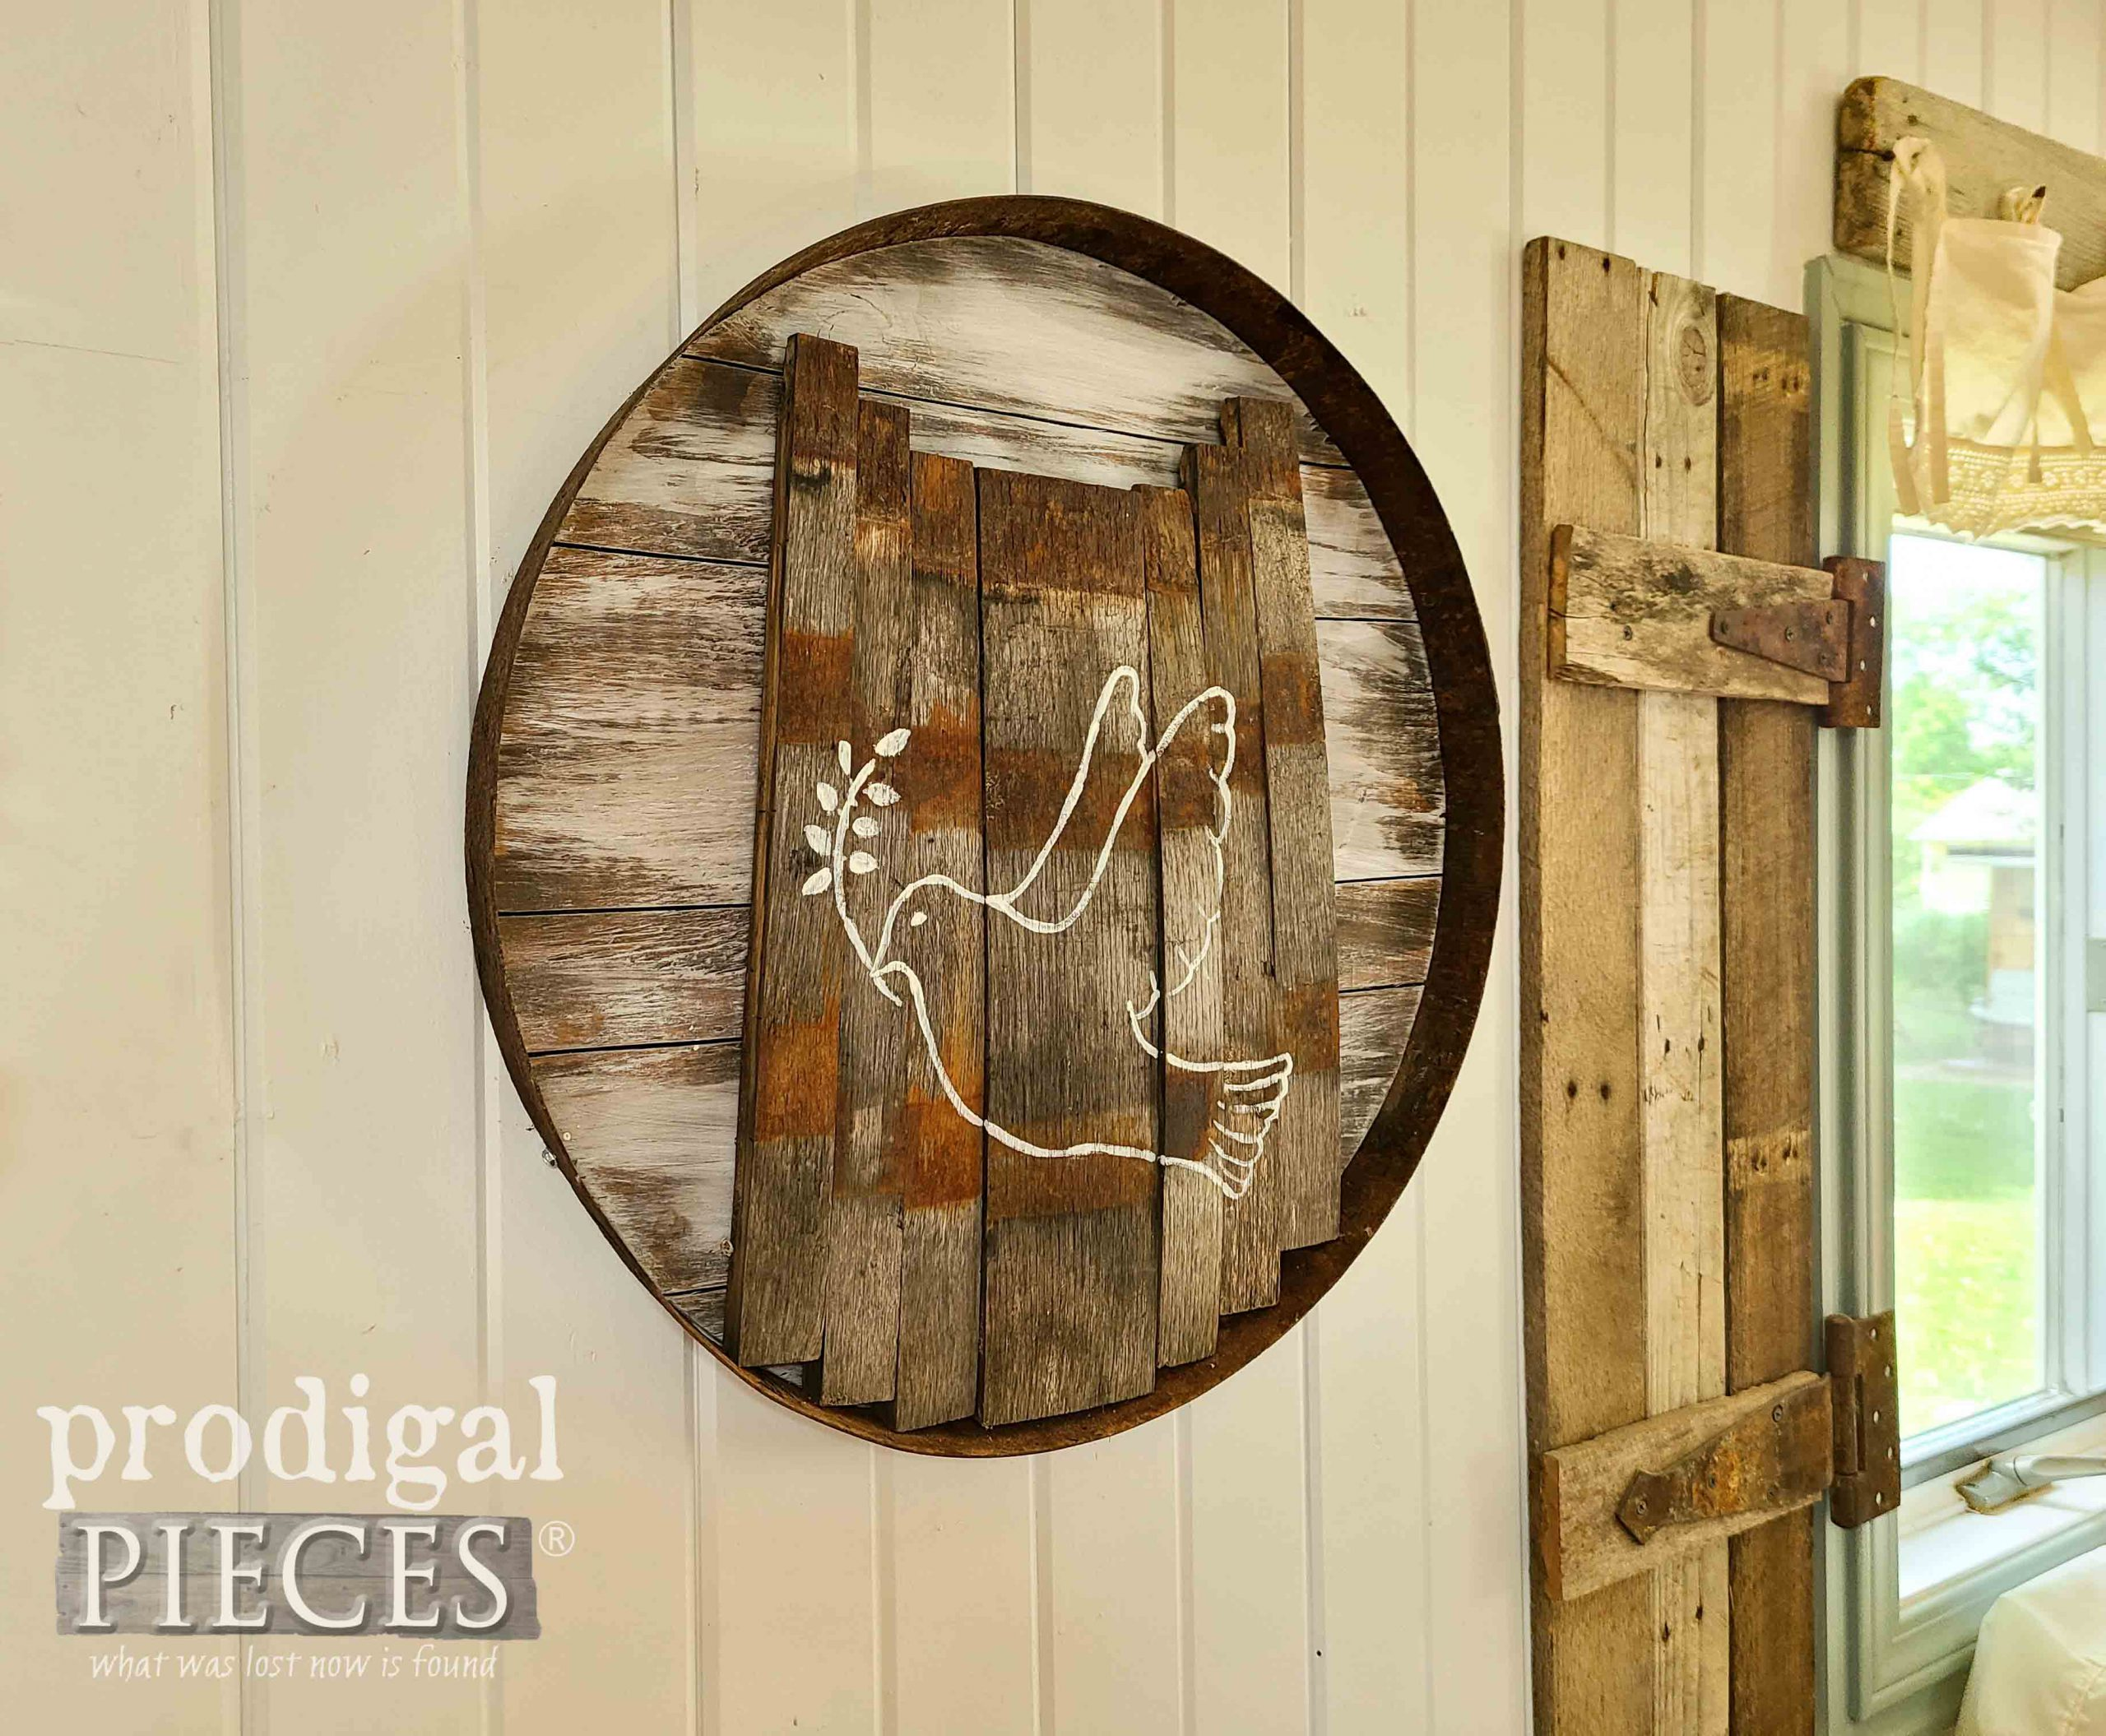 Reclaimed Wood Art from Upcycled Whiskey Barrel Ring & Staves by Larissa of Prodigal Pieces   prodigalpieces.com #prodigalpieces #farmhouse #home #homedecor #diy #reclaimed #art